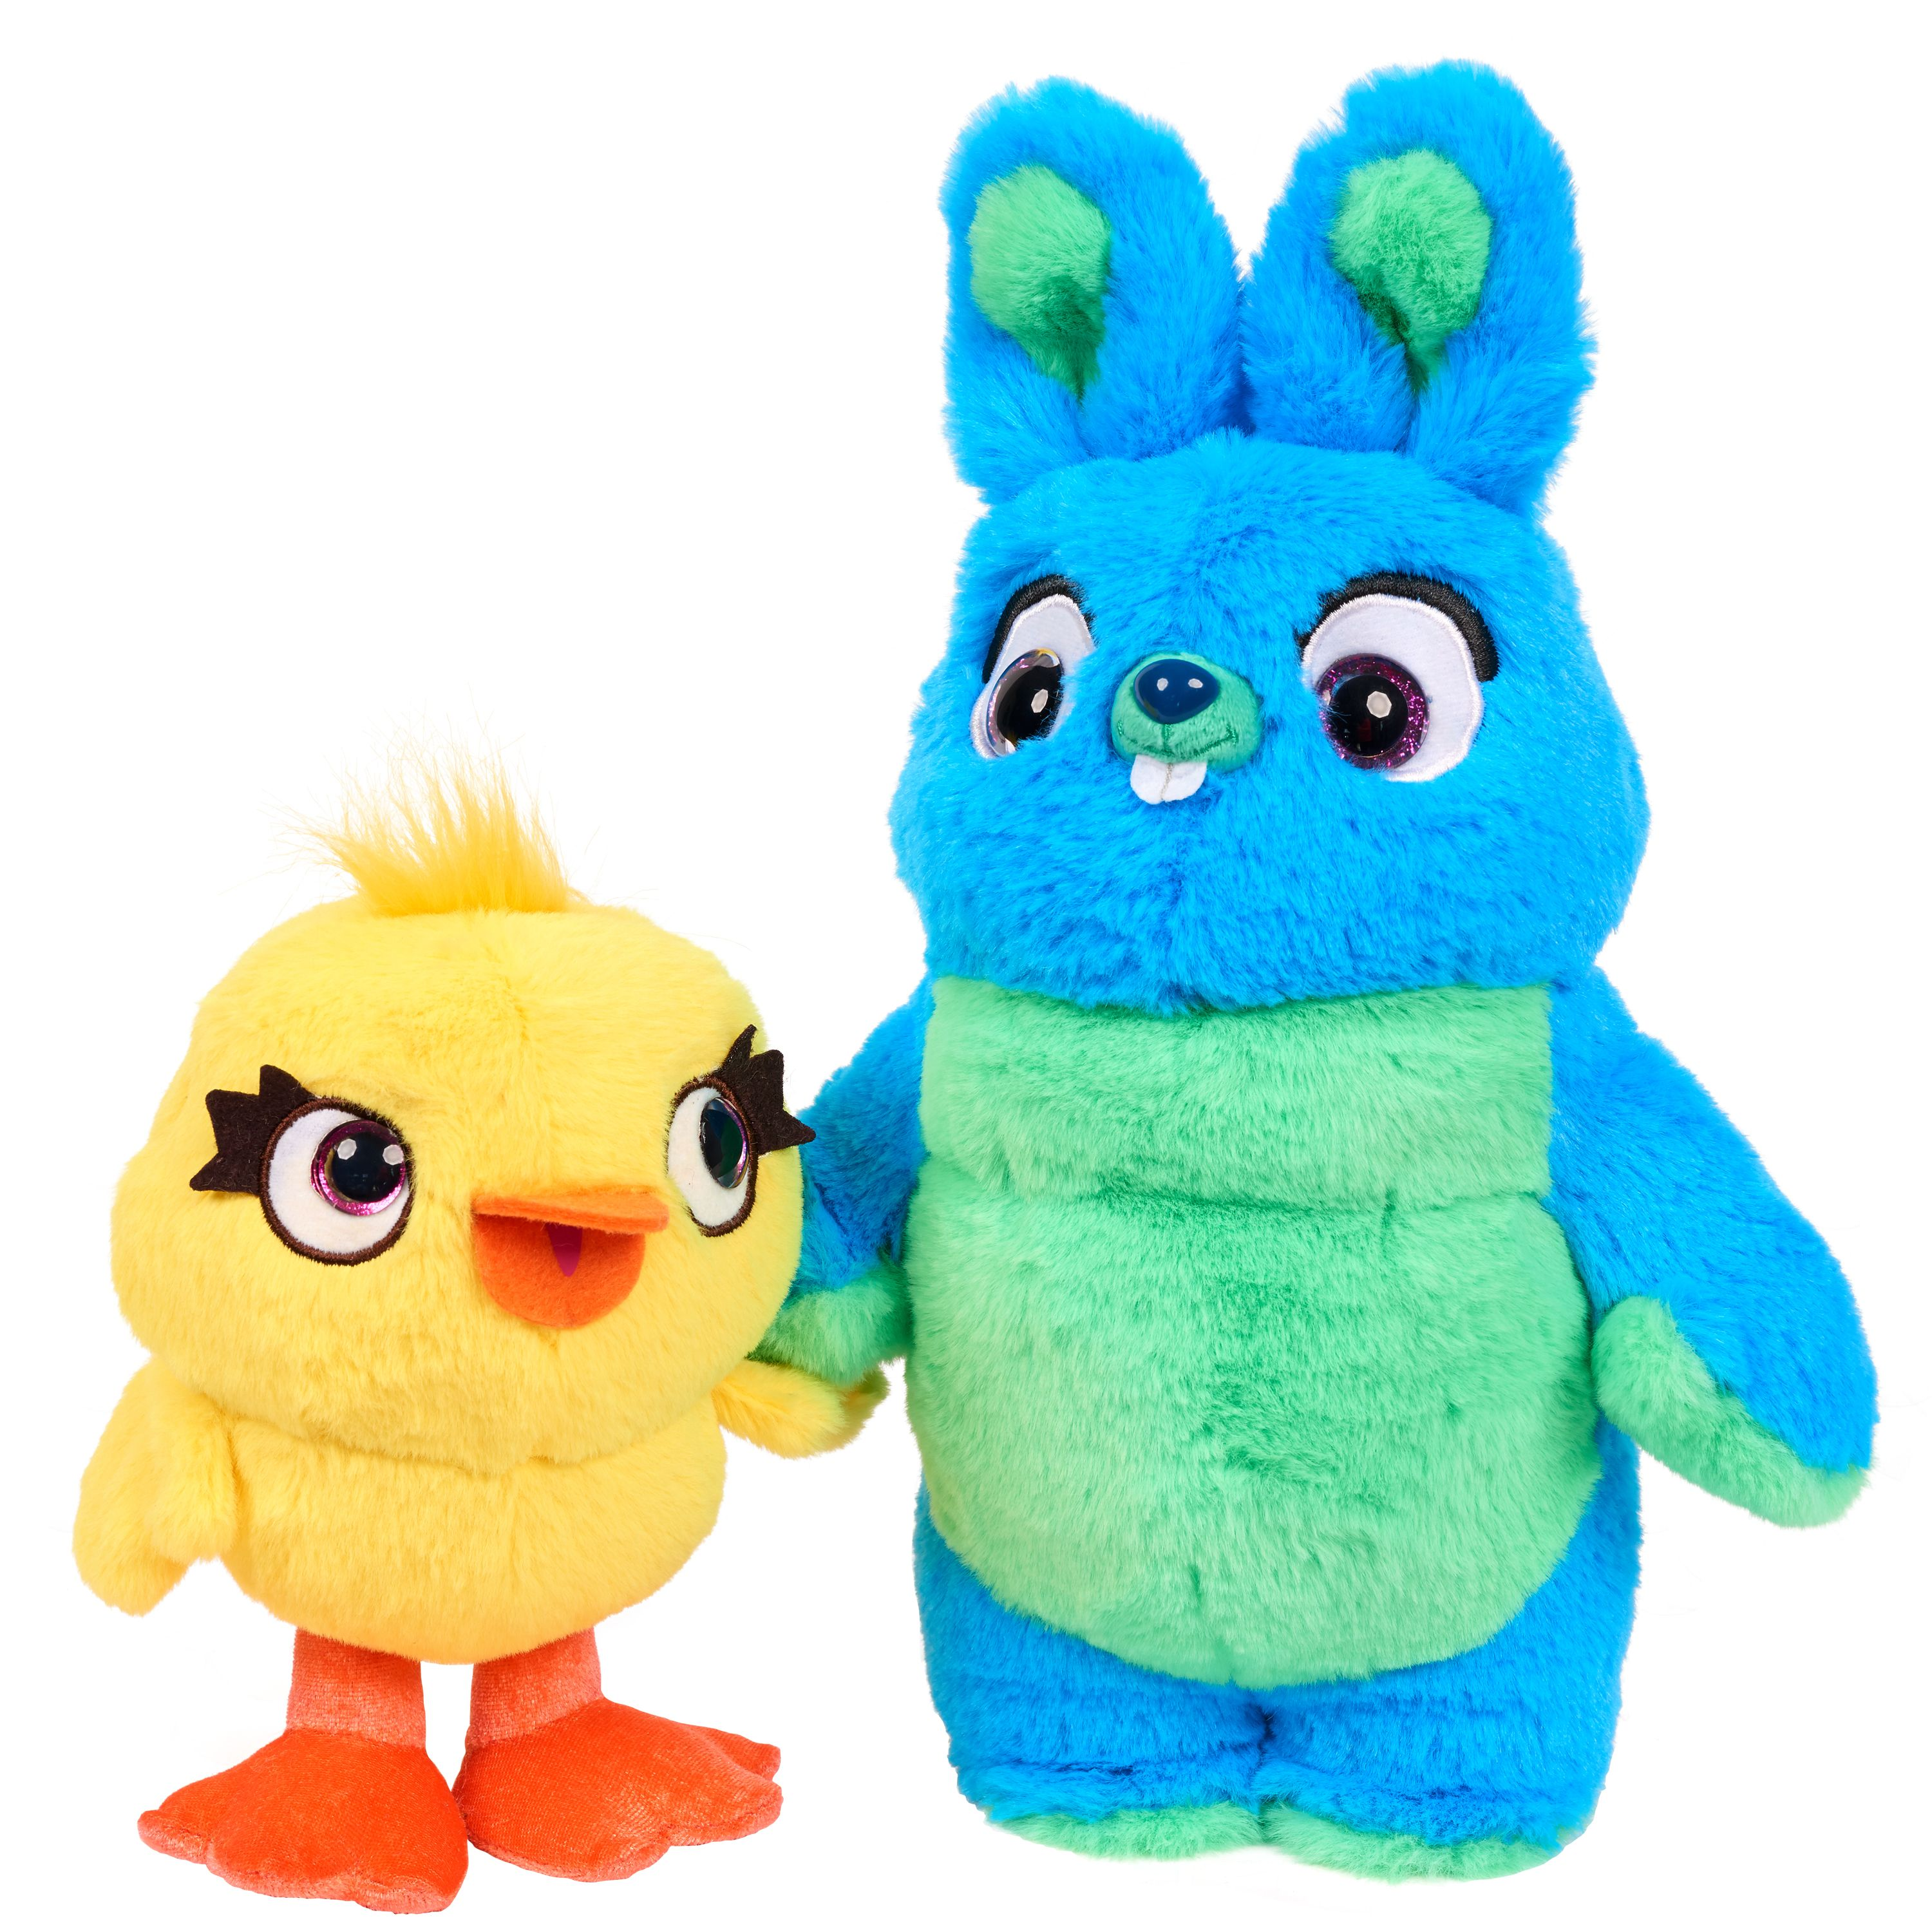 Disney Toy Story 4 Ducky & Bunny Scented Friendship Plush Set